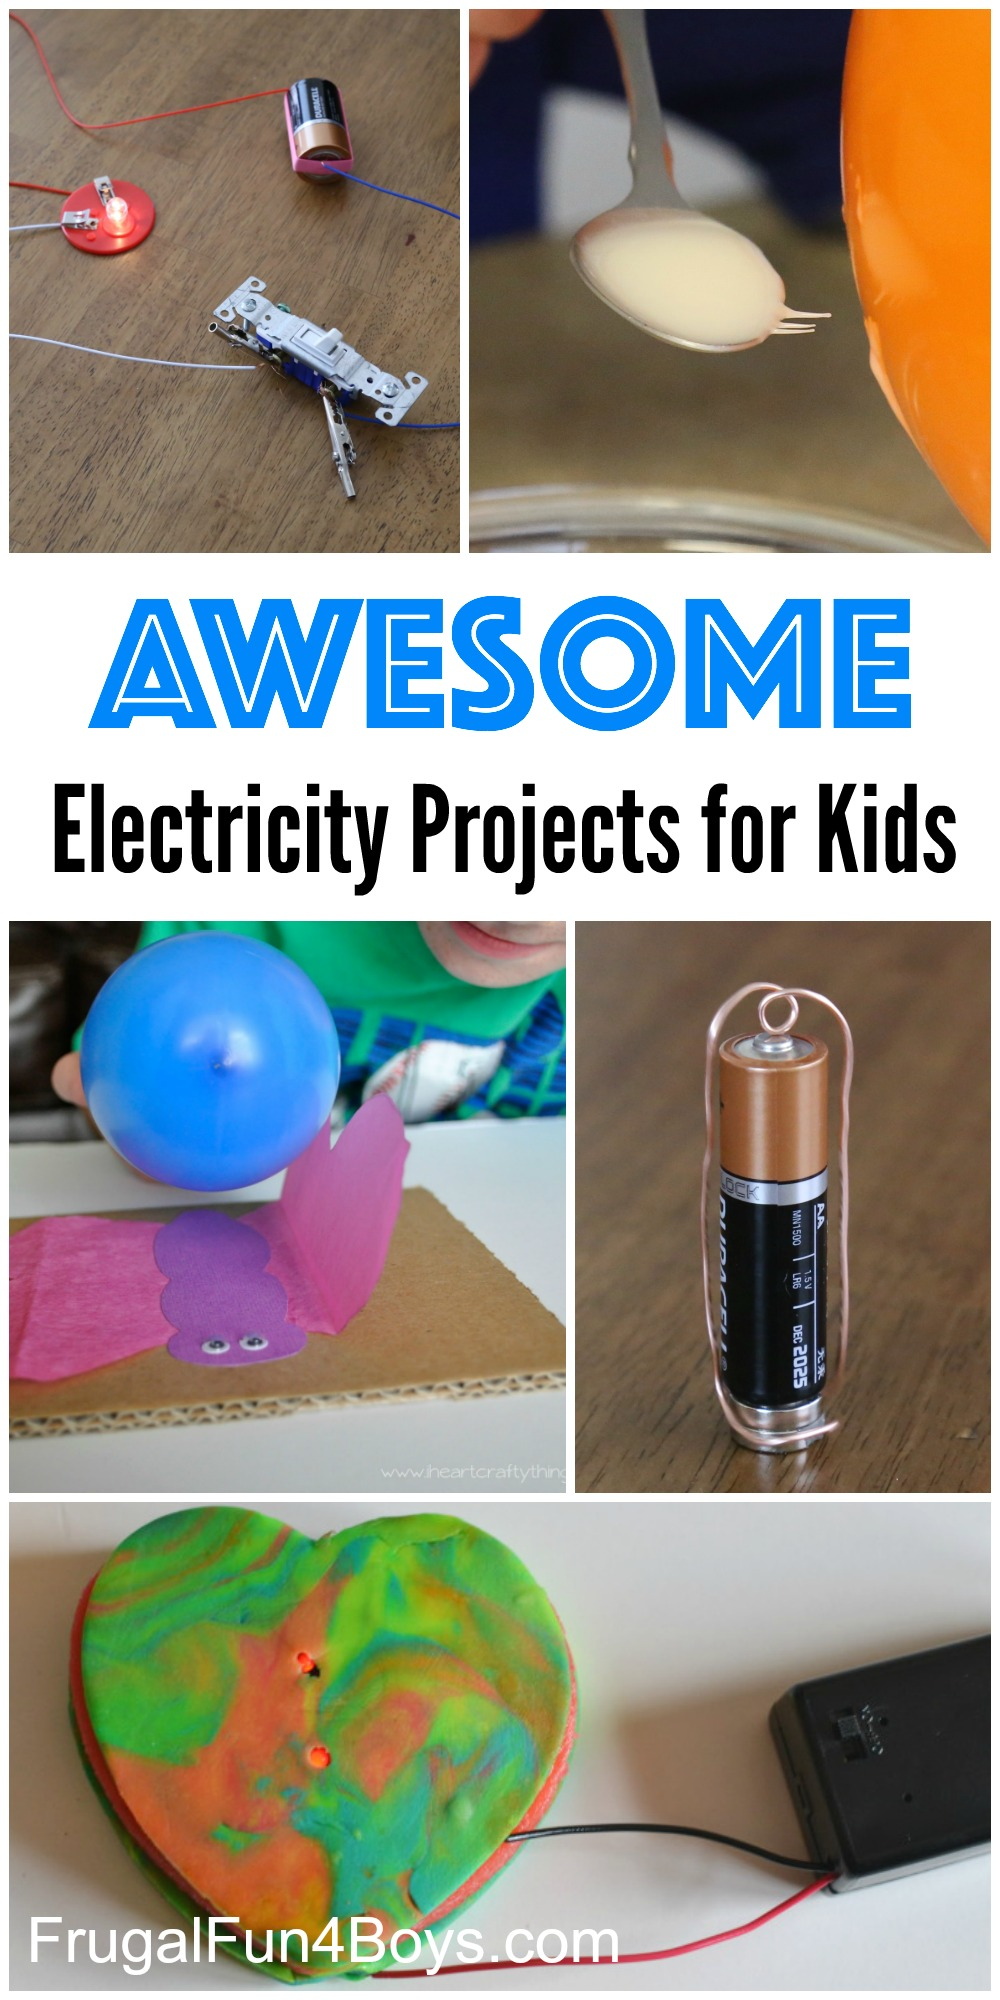 Awesome Electricity Projects for Kids! Science experiments ...